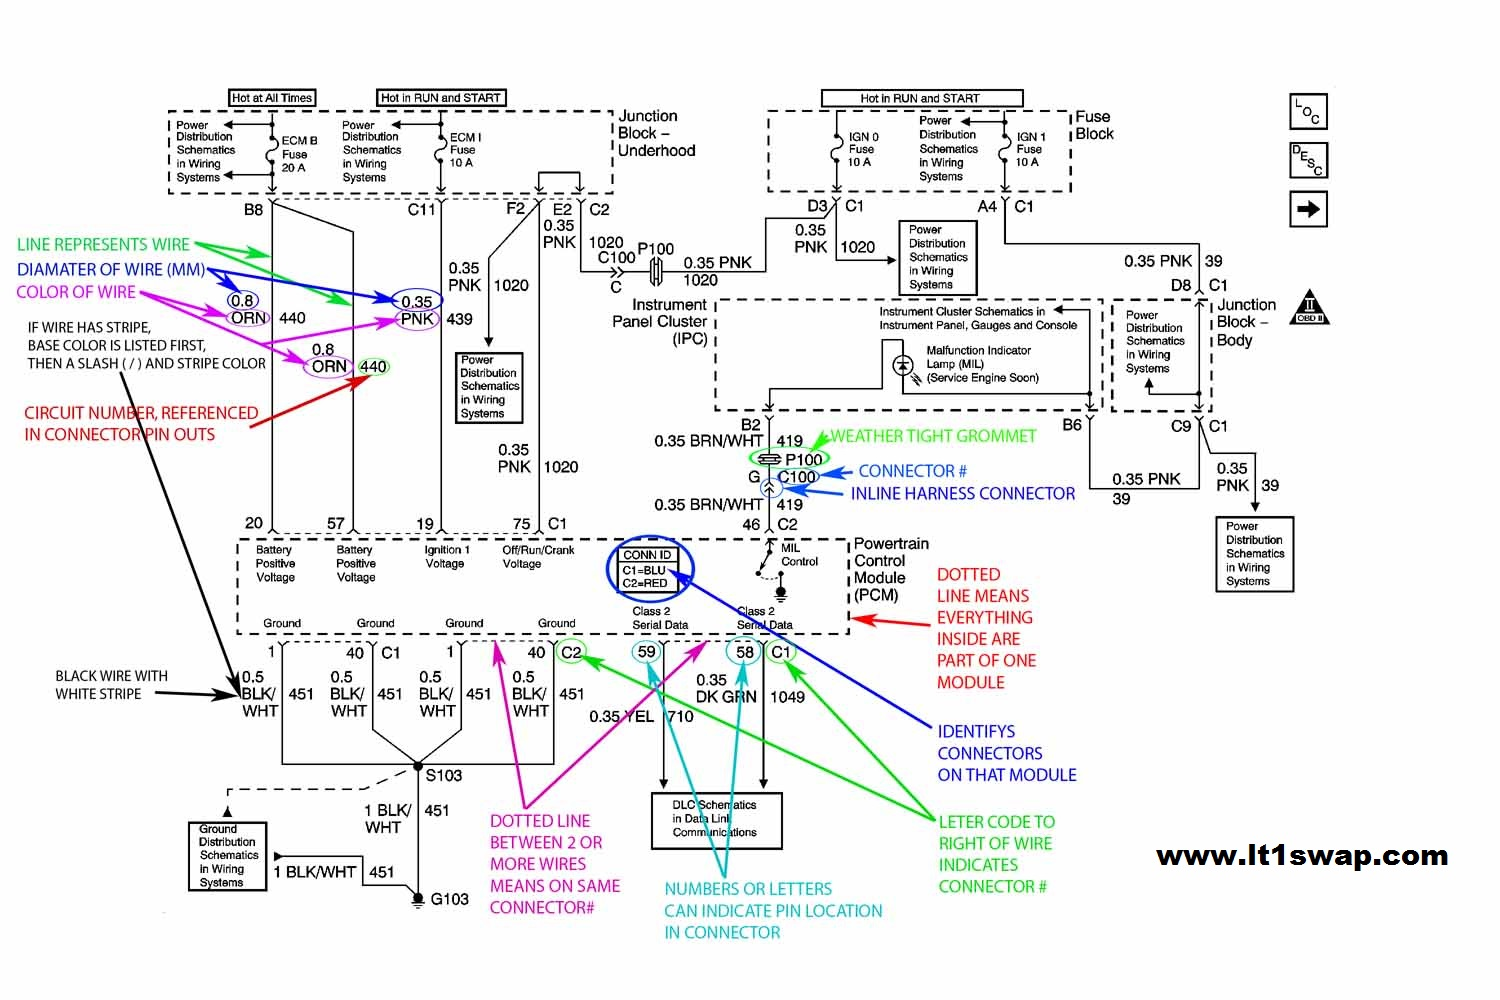 hight resolution of obd2 wiring harness diagram wiring diagrams scematic gm obd2 connector pinout 01 honda accord obd2 wiring